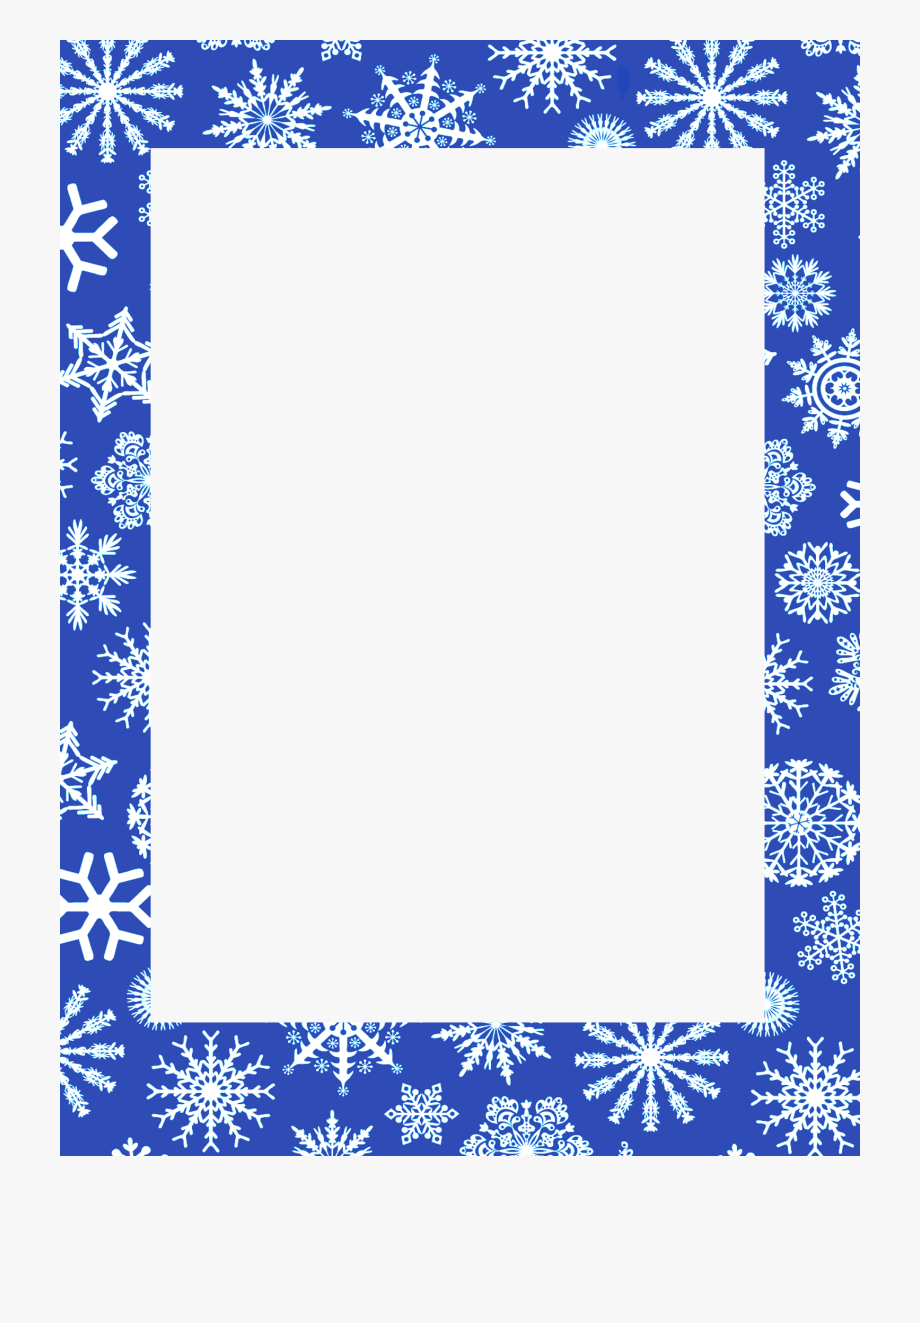 Winter Frame Png.